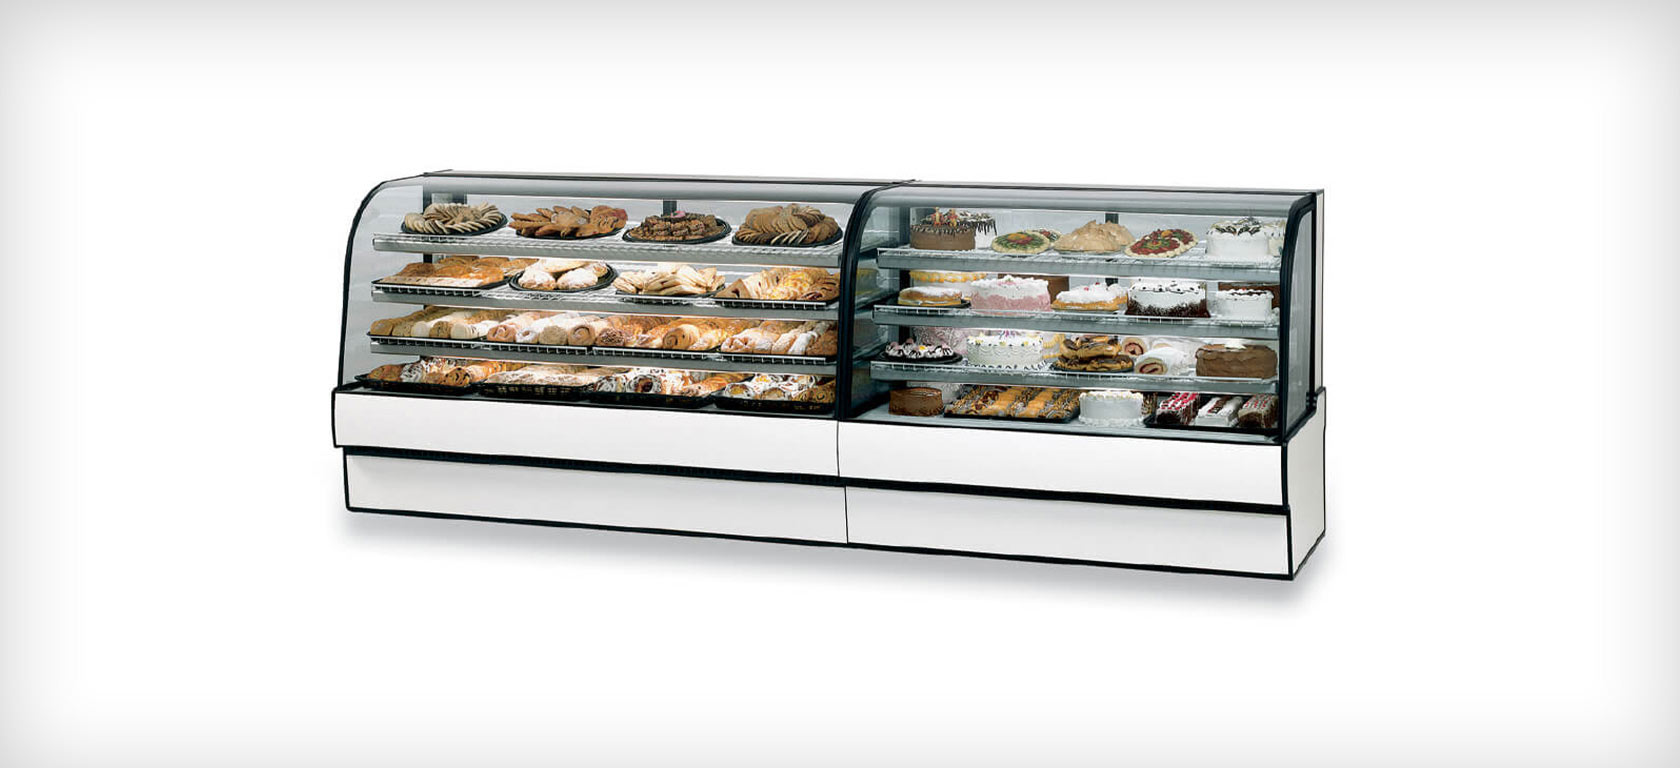 Curved glass refrigerated bakery and deli lineup